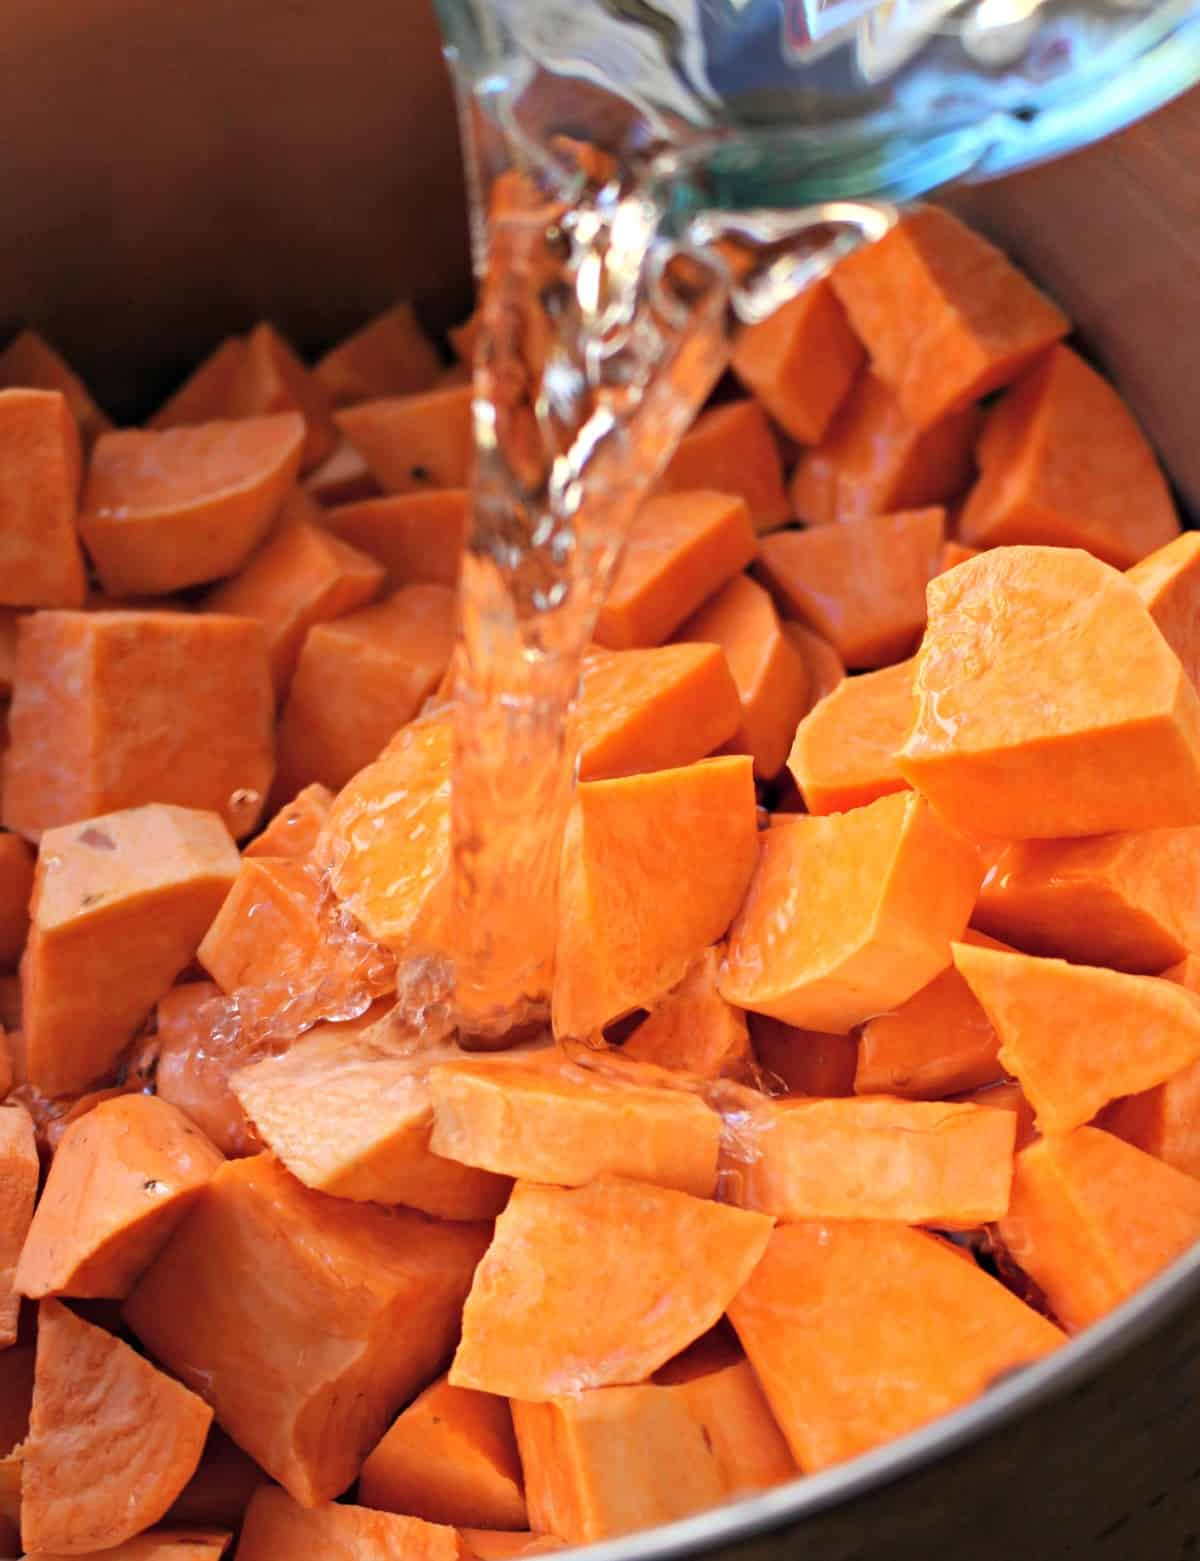 Water pouring into a pot filled with diced sweet potatoes.